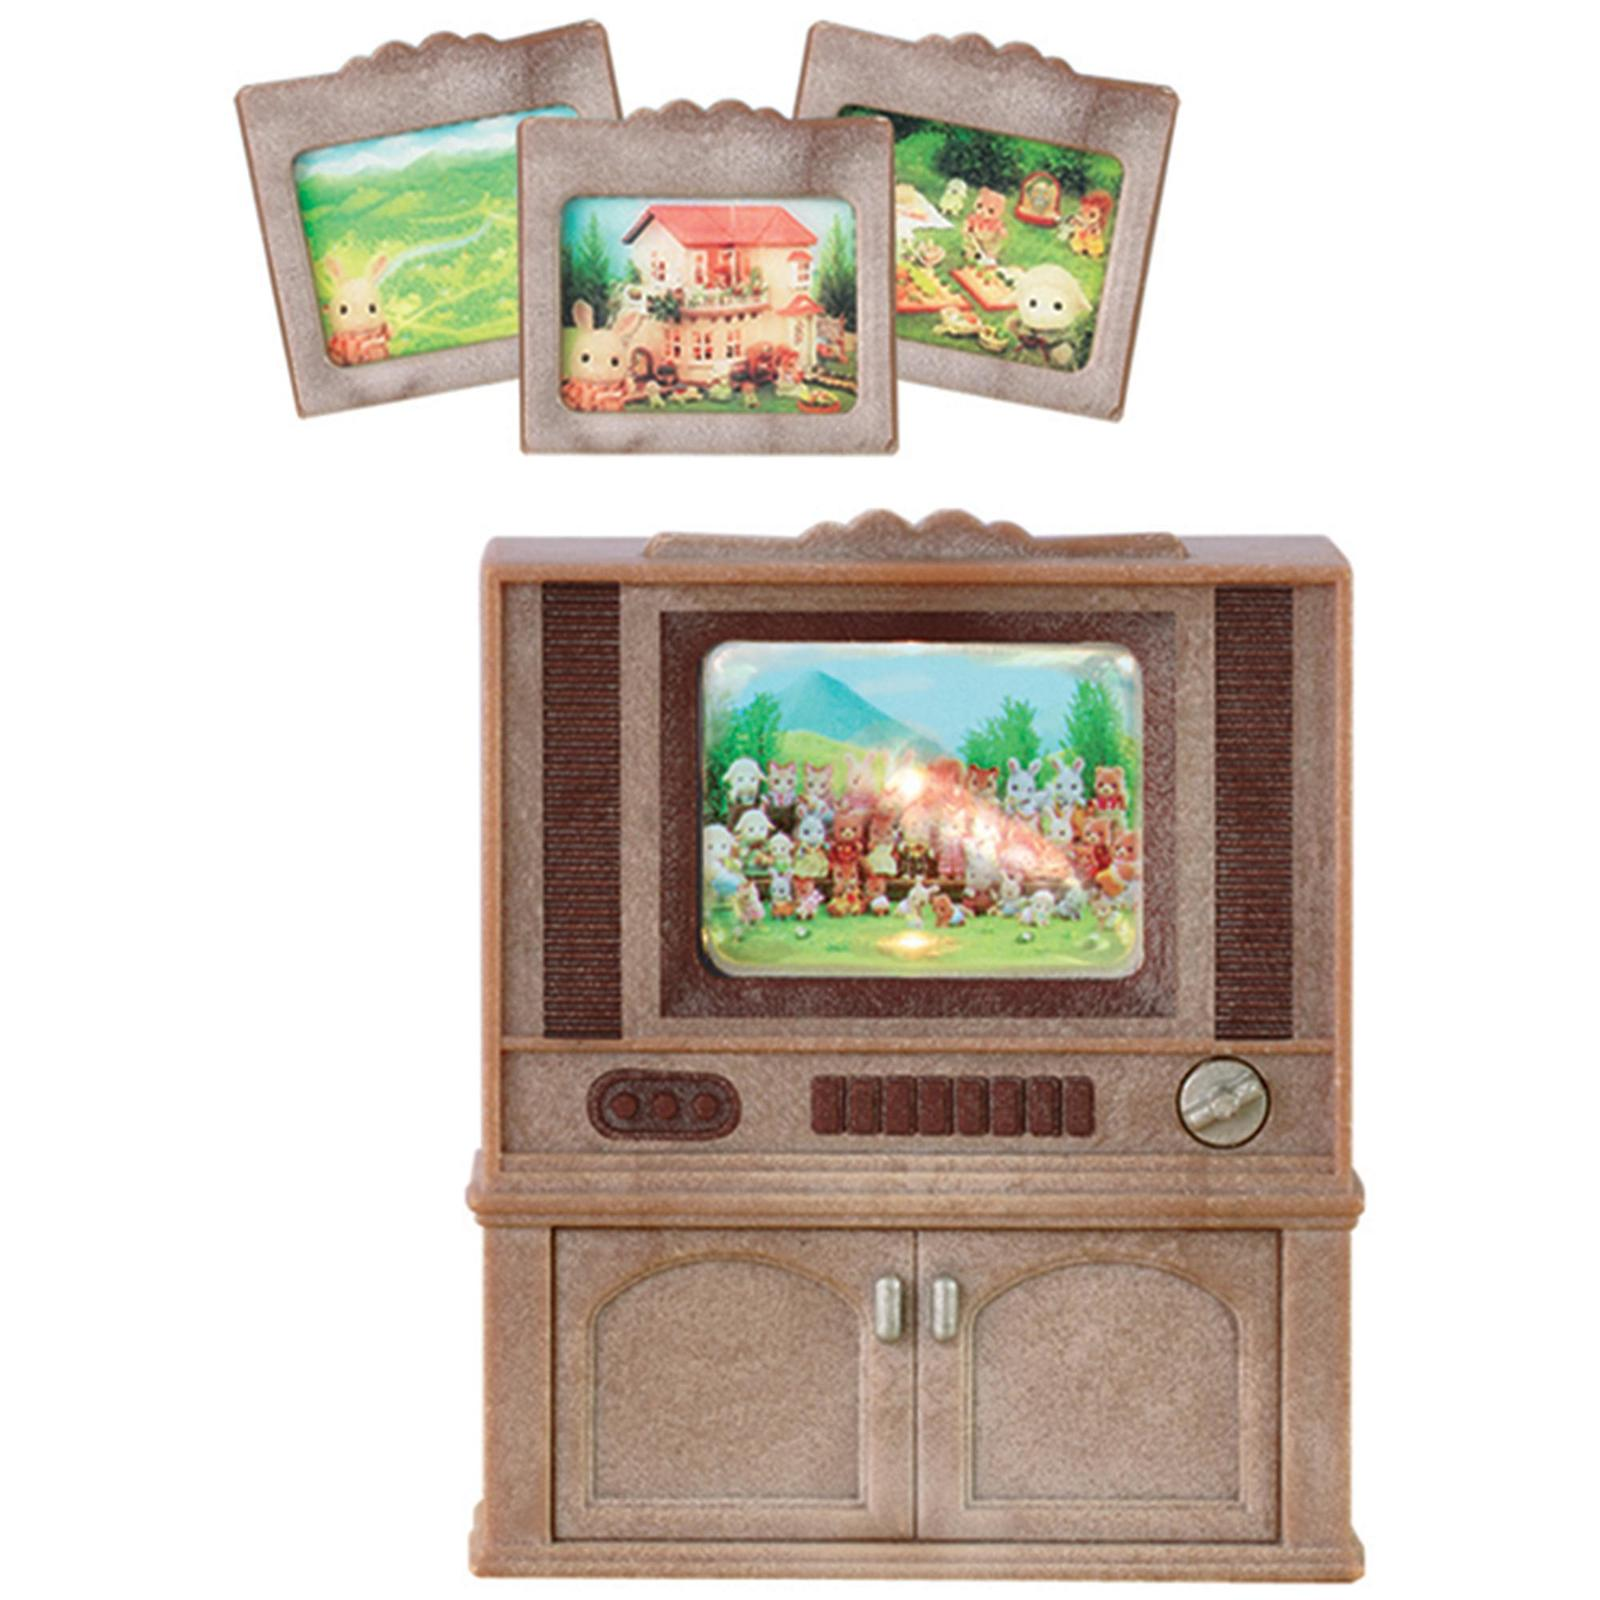 Sylvanian Families Deluxe Colour Tv Images At Mighty Ape Nz